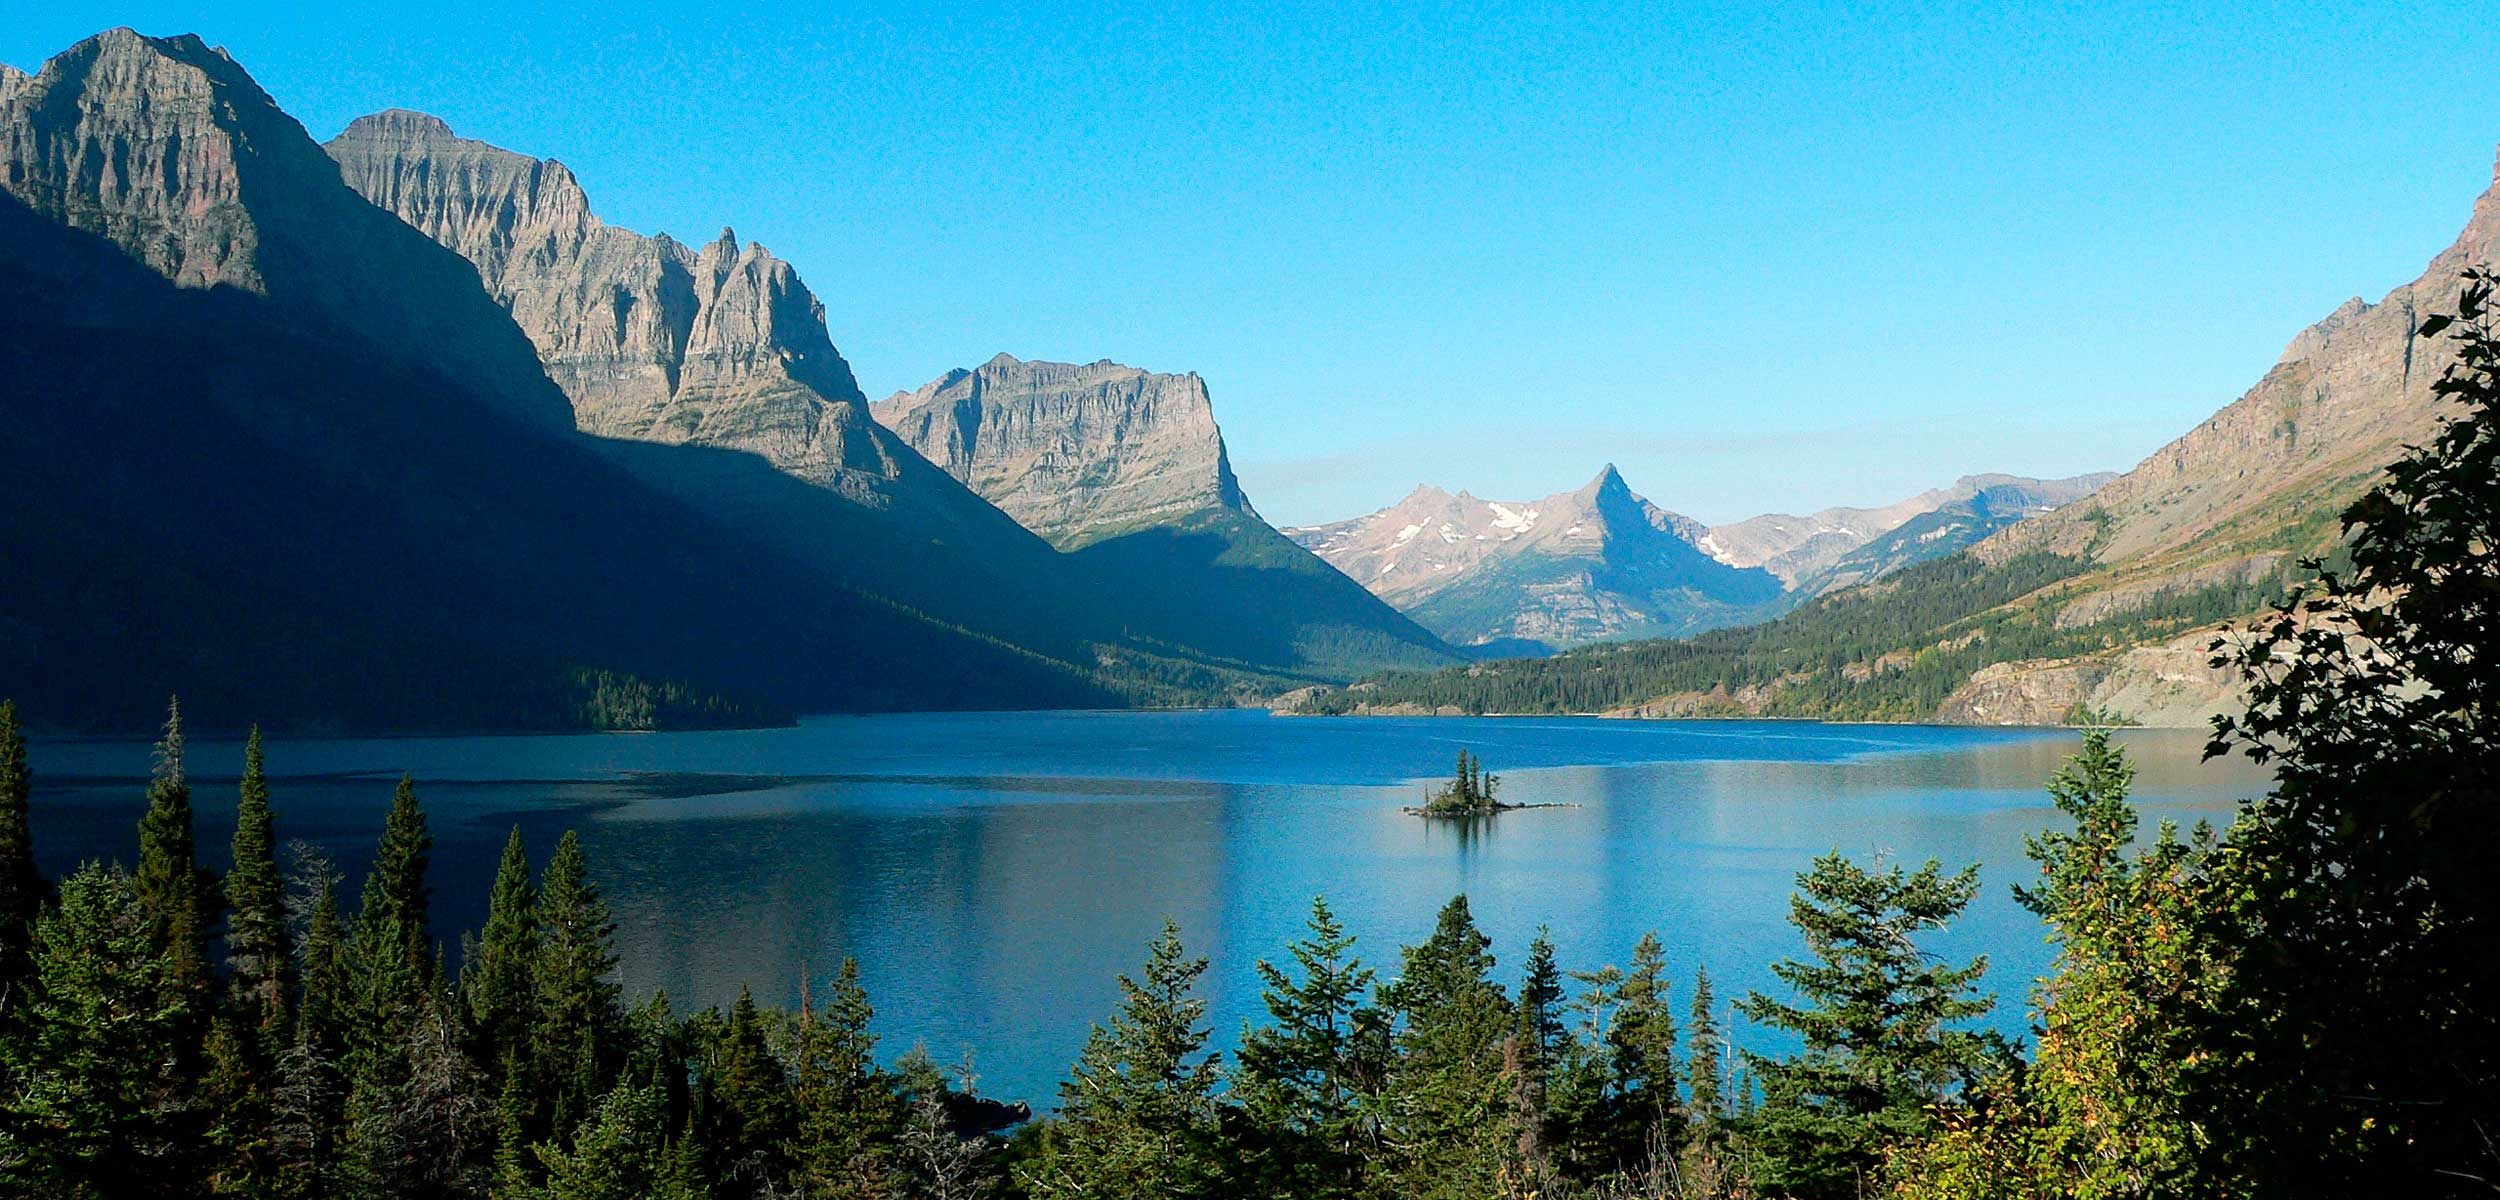 Glacier National Park/ Crédito foto: http://survivallife.com/glacier-national-park-camping-survival-life-national-park-camping/